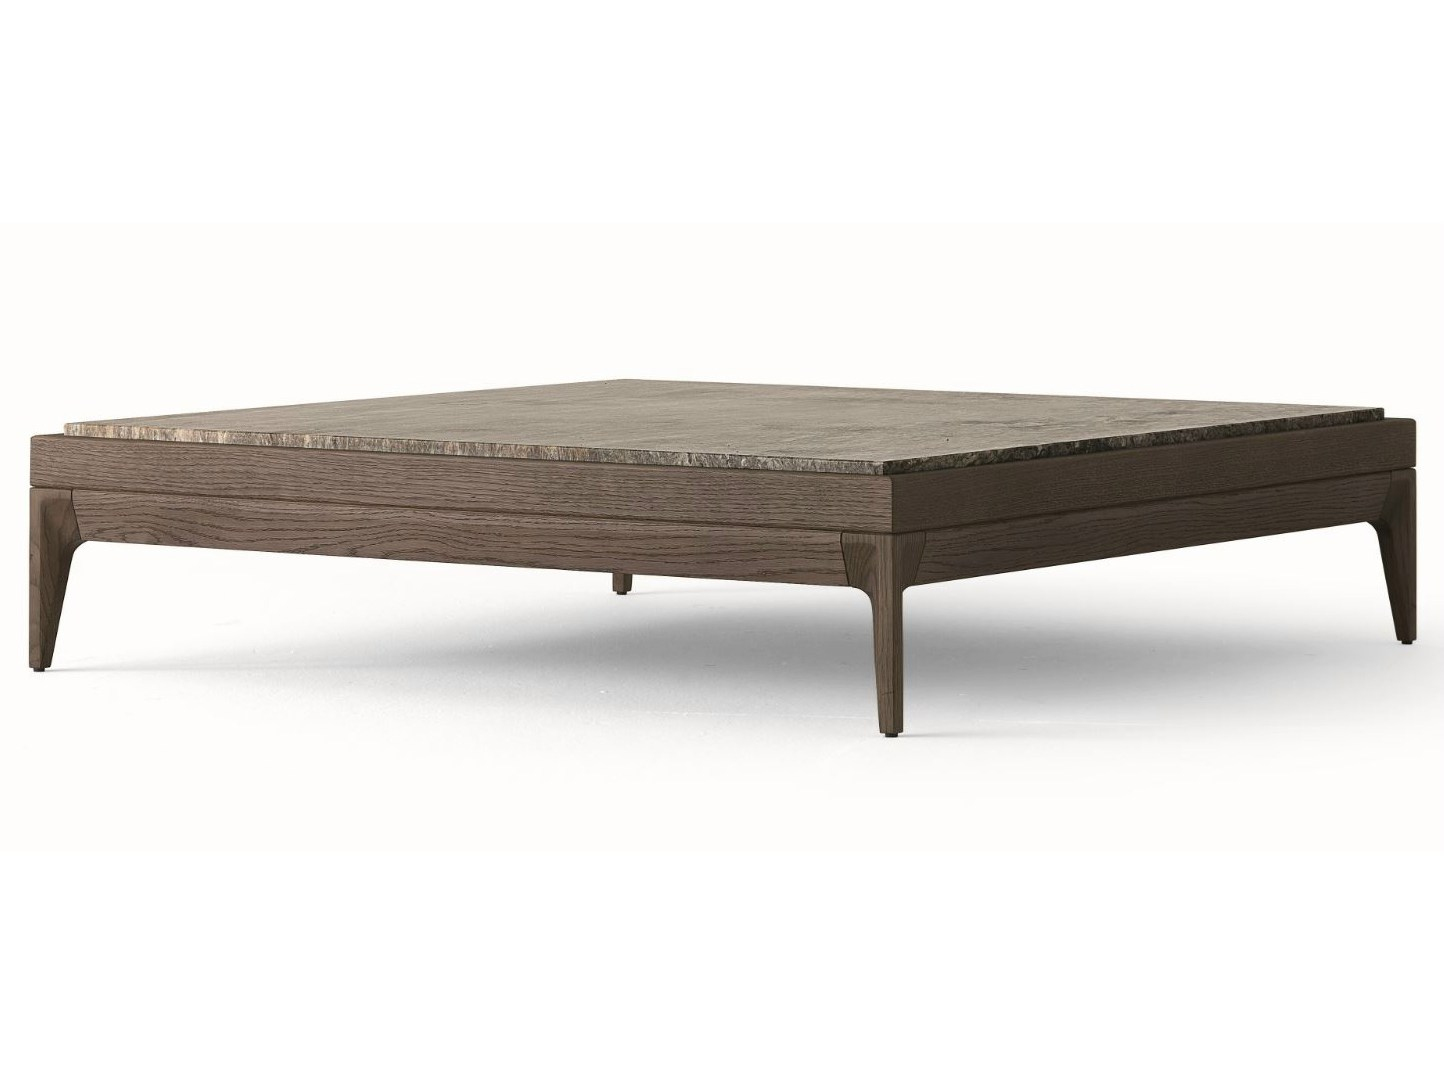 Antibes table basse by misuraemme design ferruccio laviani for Table basse carree bois massif